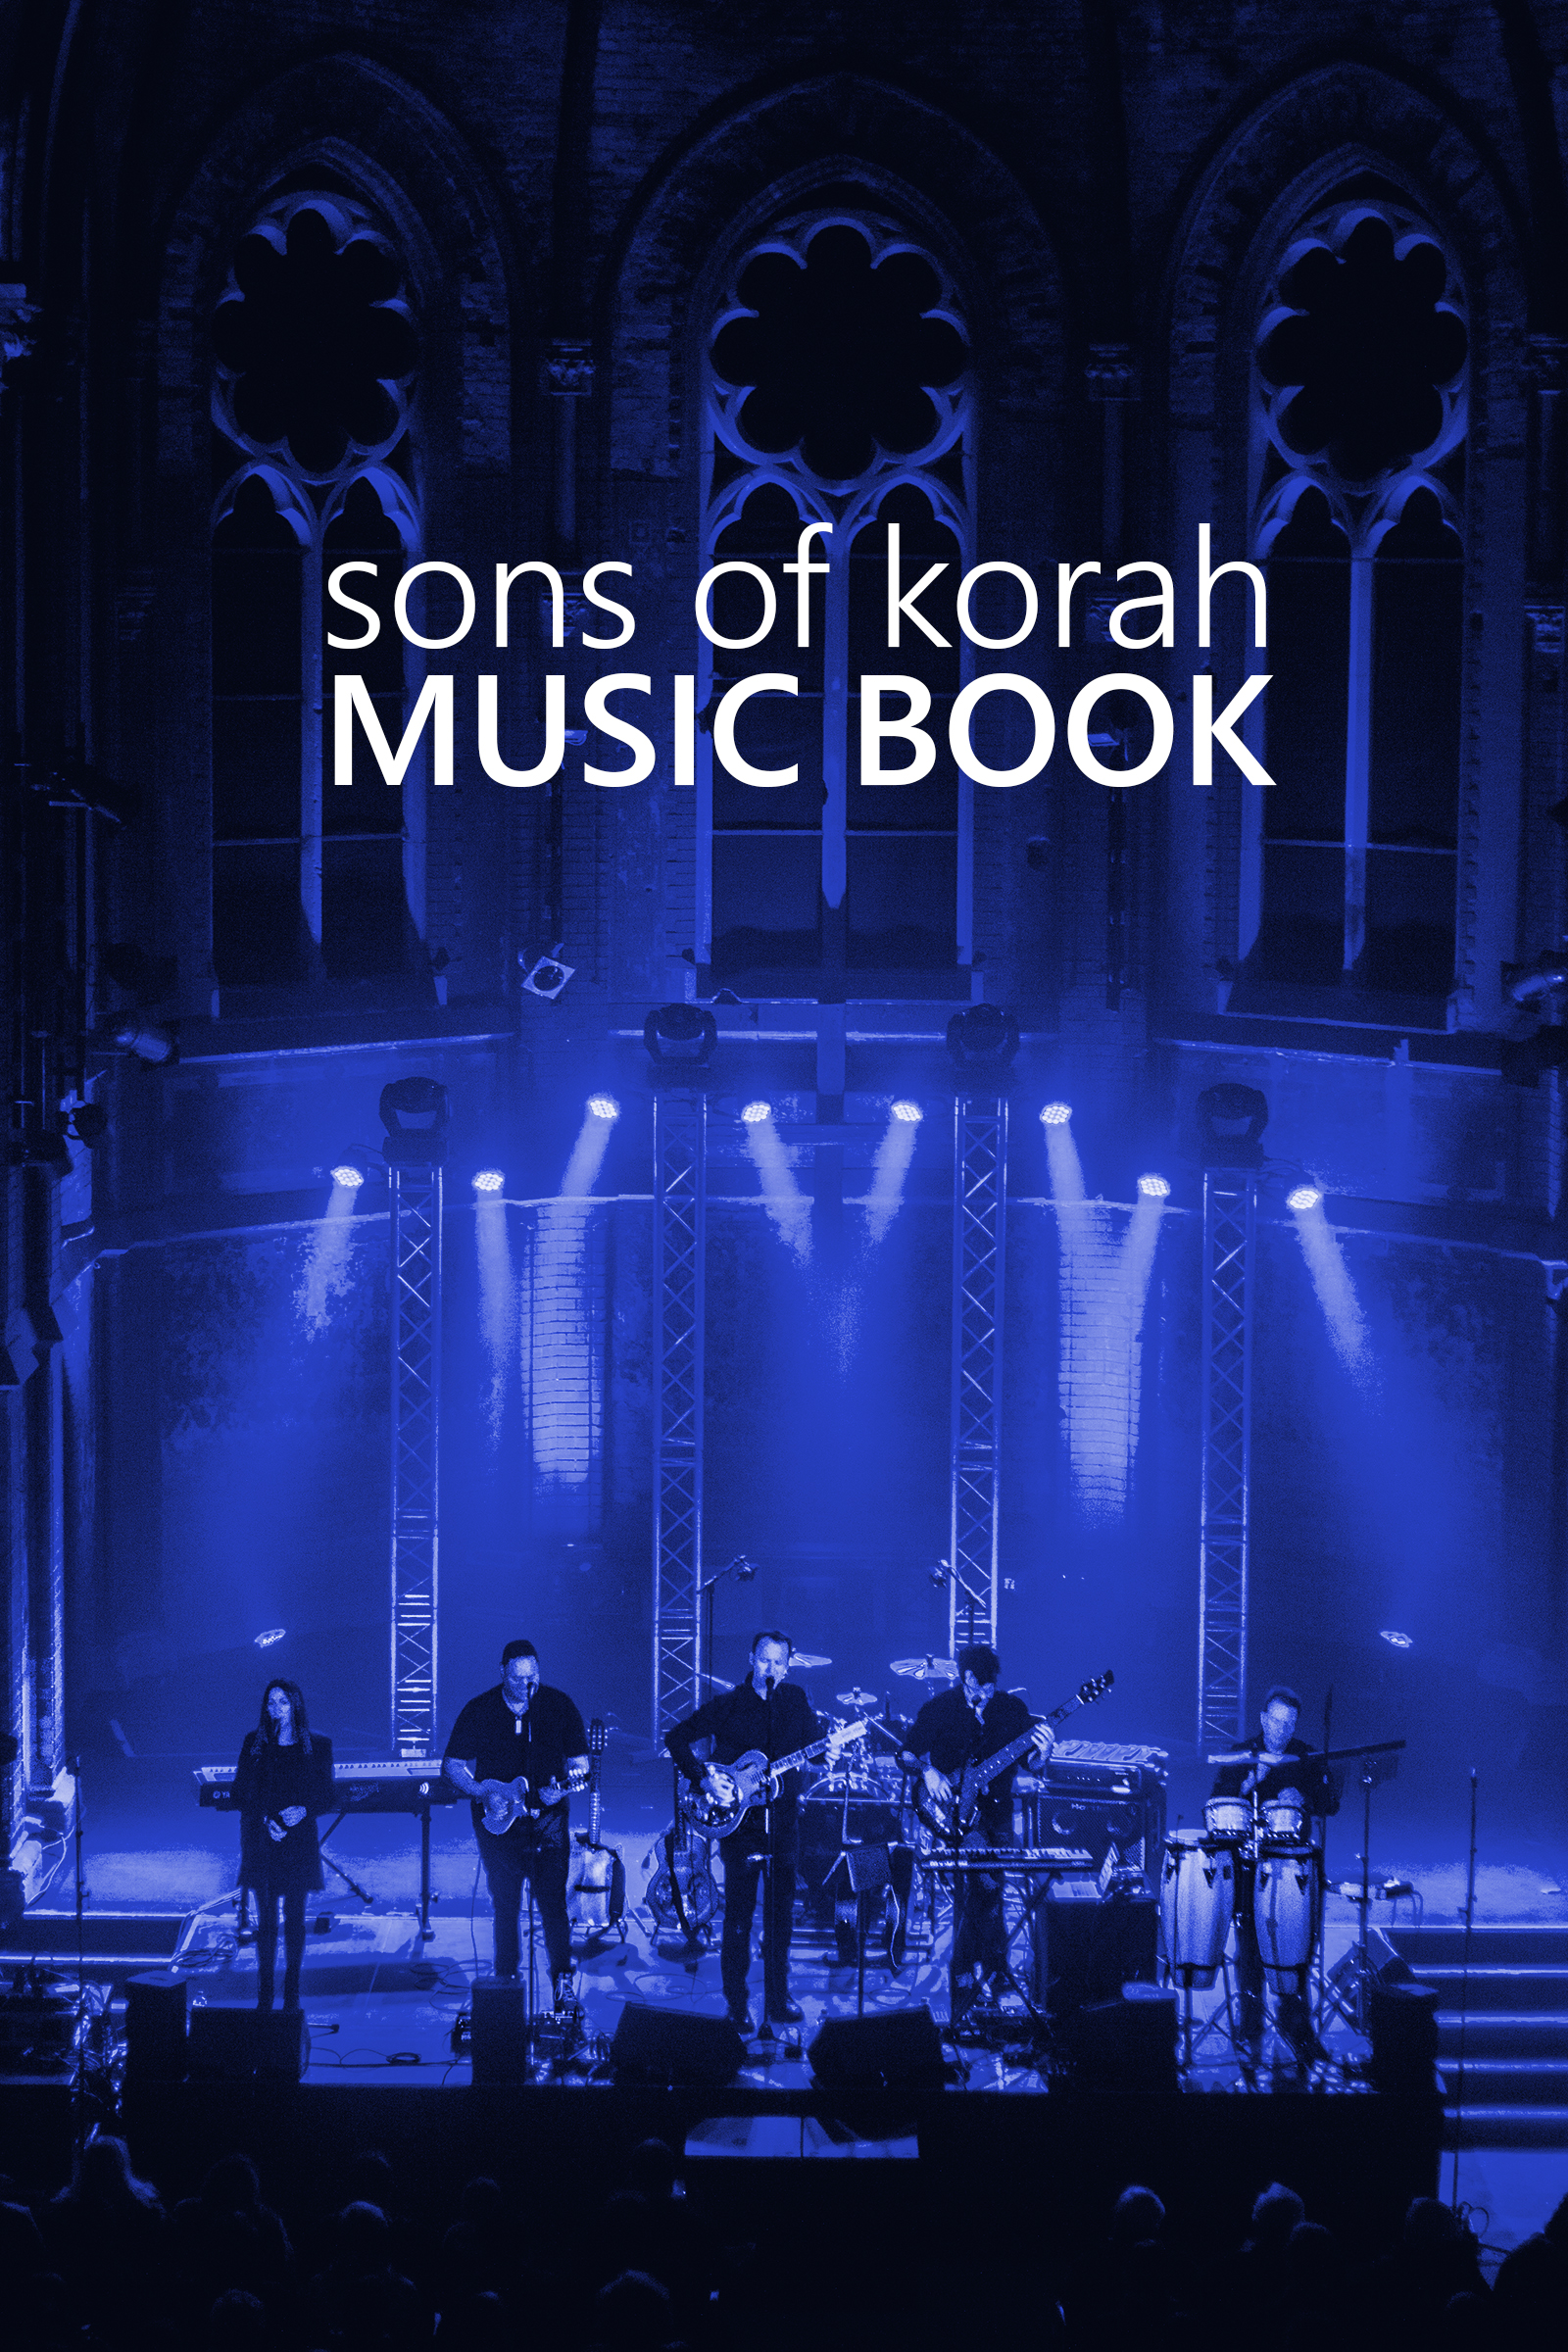 Sons of Korah Music Book